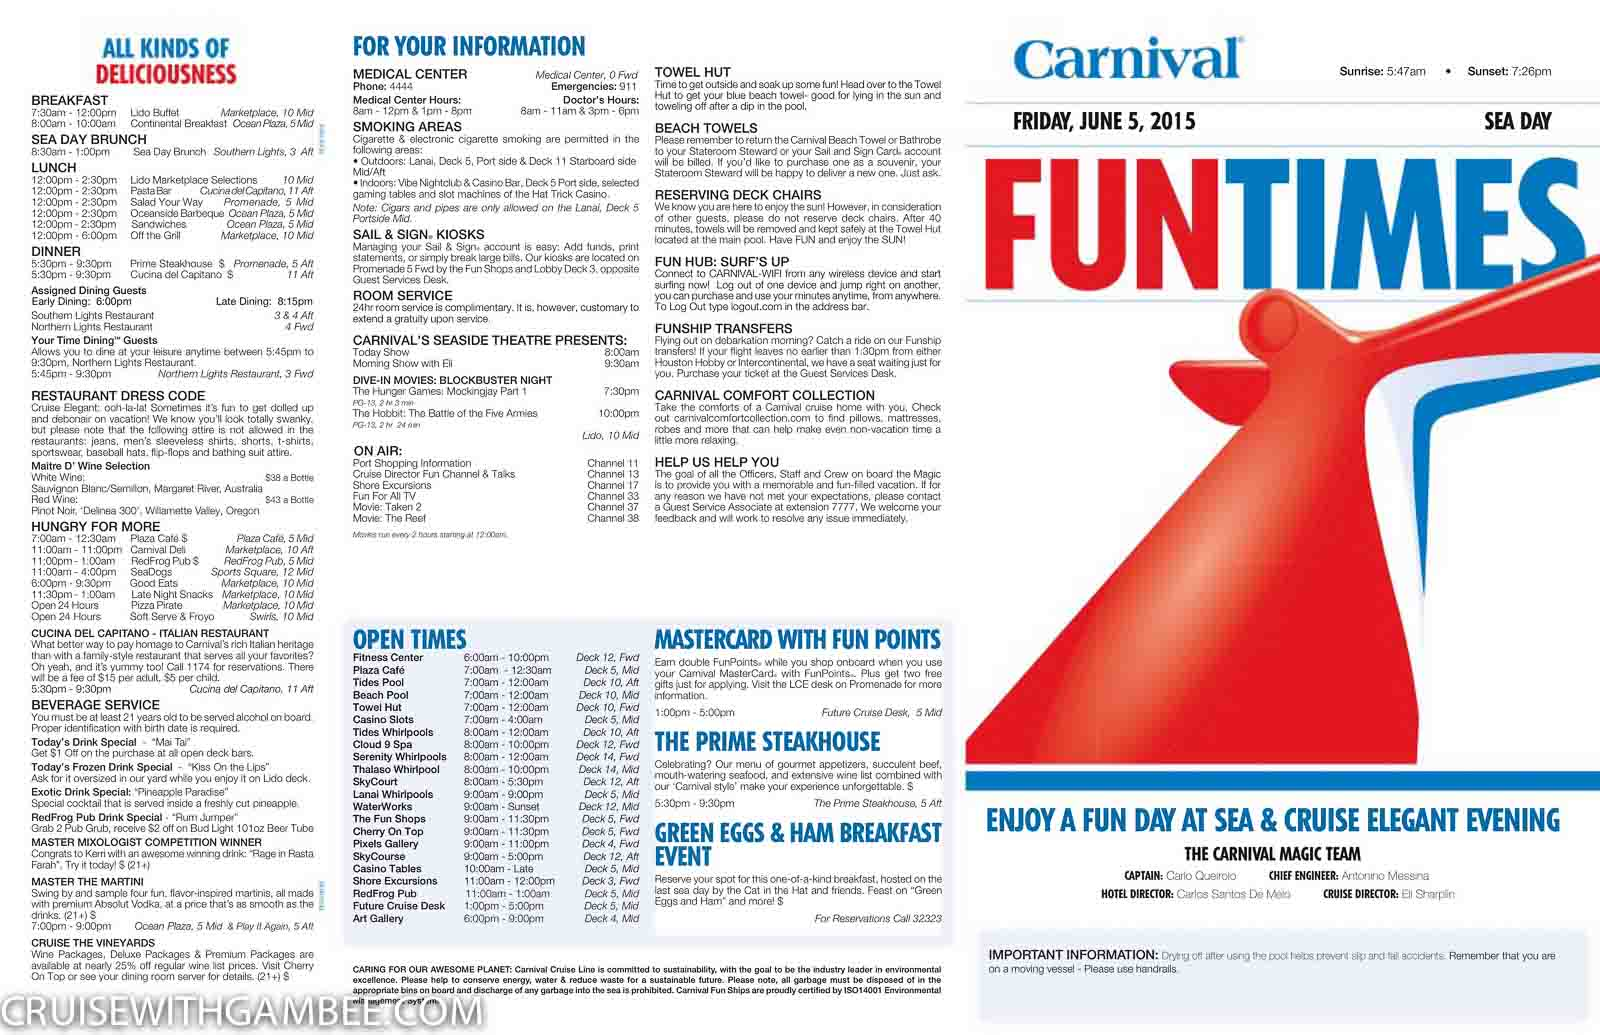 Carnival Magic Funtimes-11